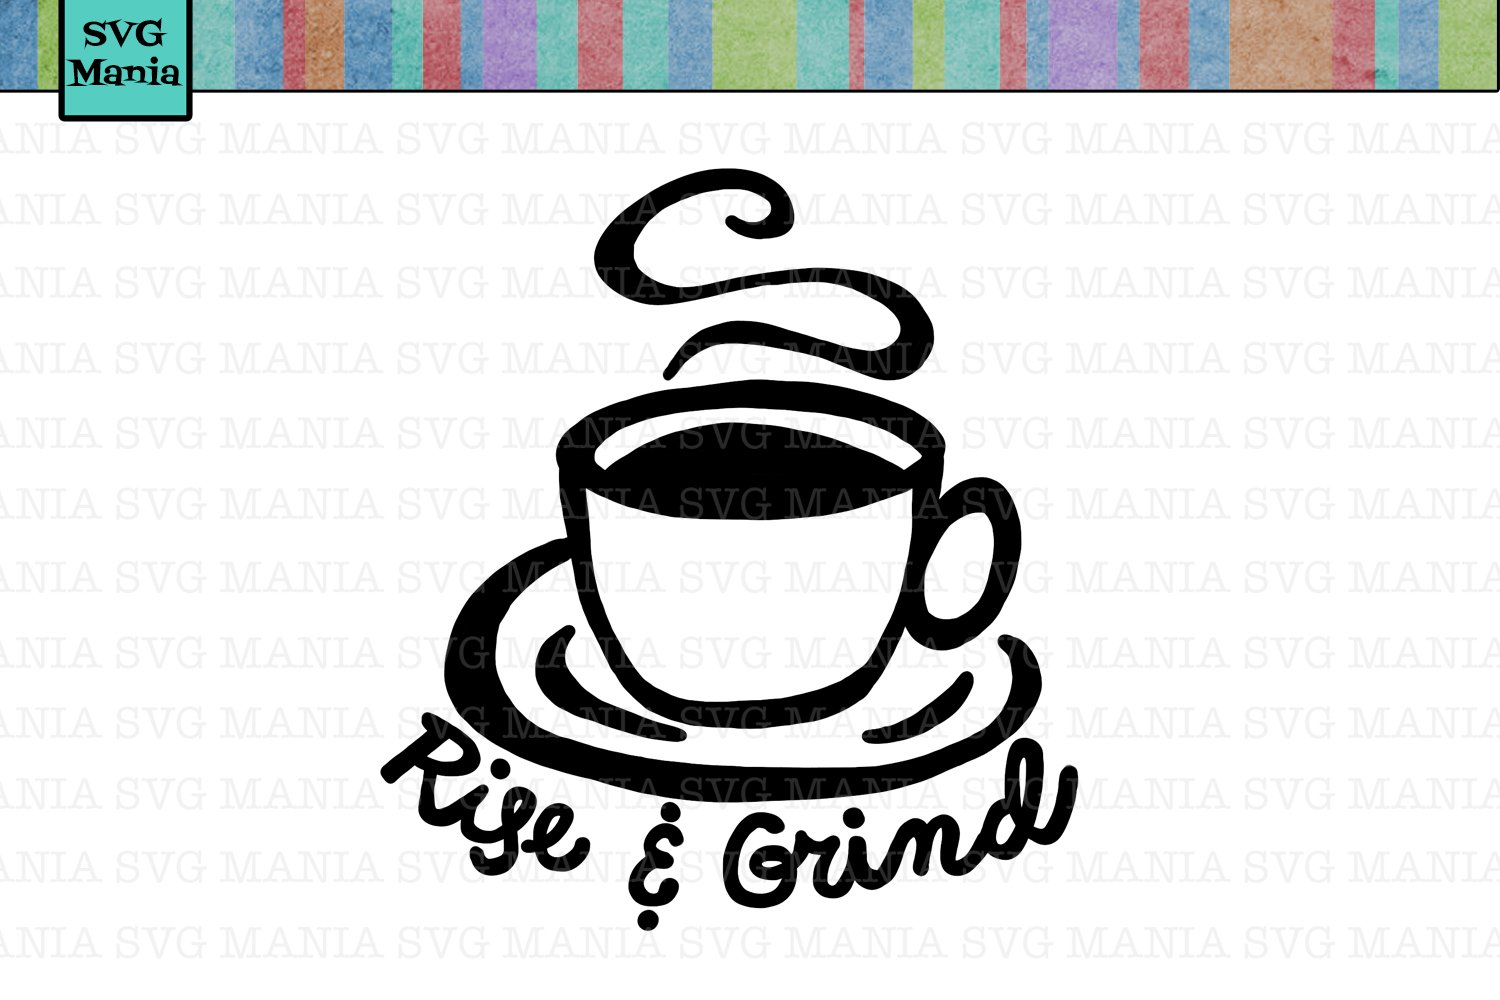 Rise And Grind Coffee Svg File Funny Coffee Svg File Funny Coffee Saying Svg Coffee Mug Svg Svg Files For Cricut 103099 Svgs Design Bundles